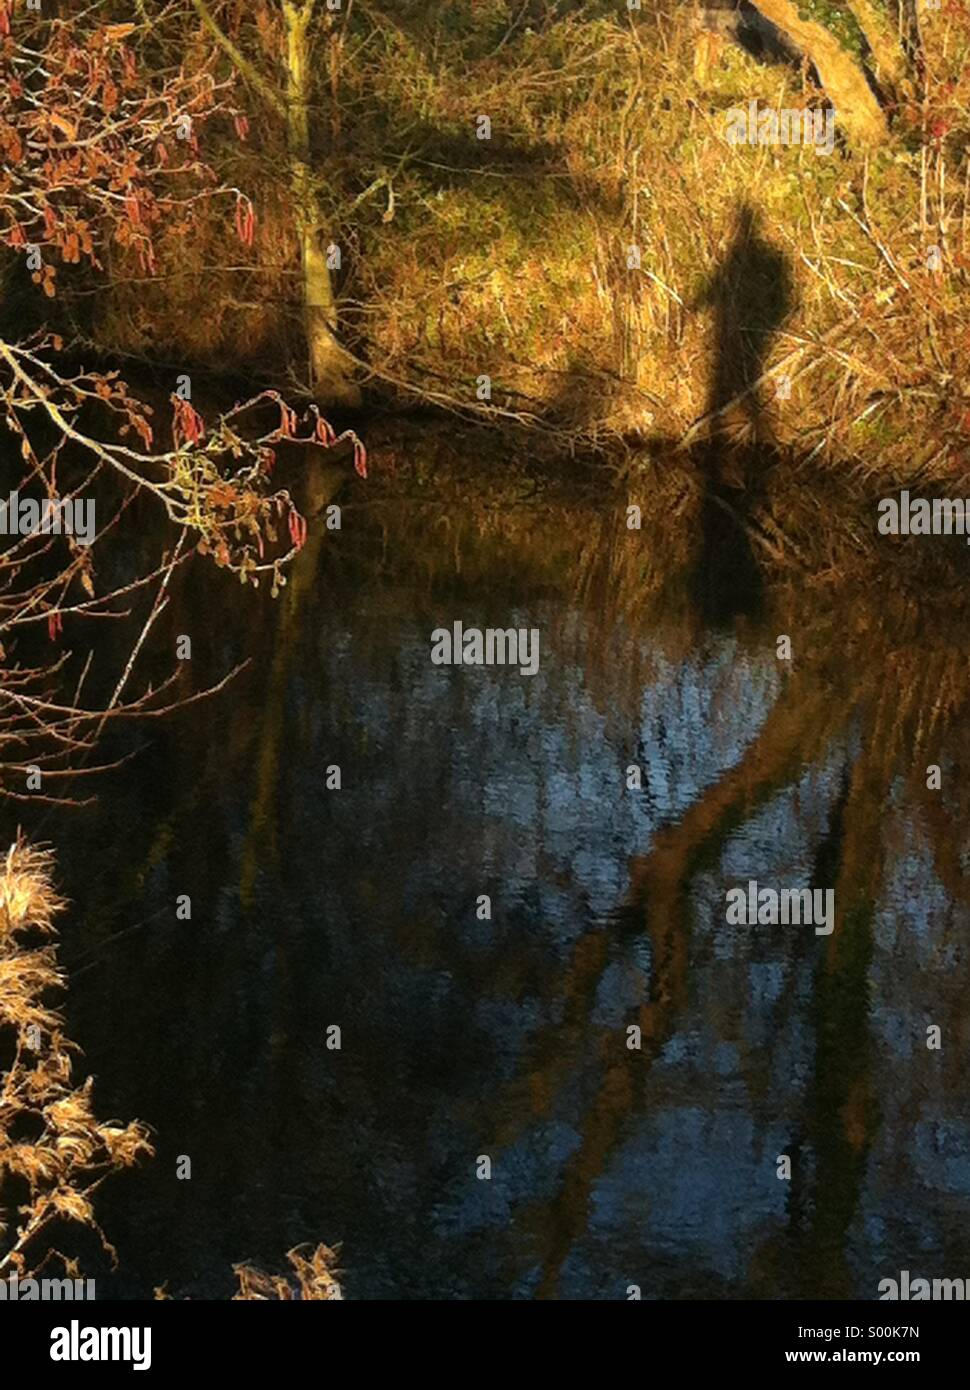 Walkers shadow on river bank - Stock Image